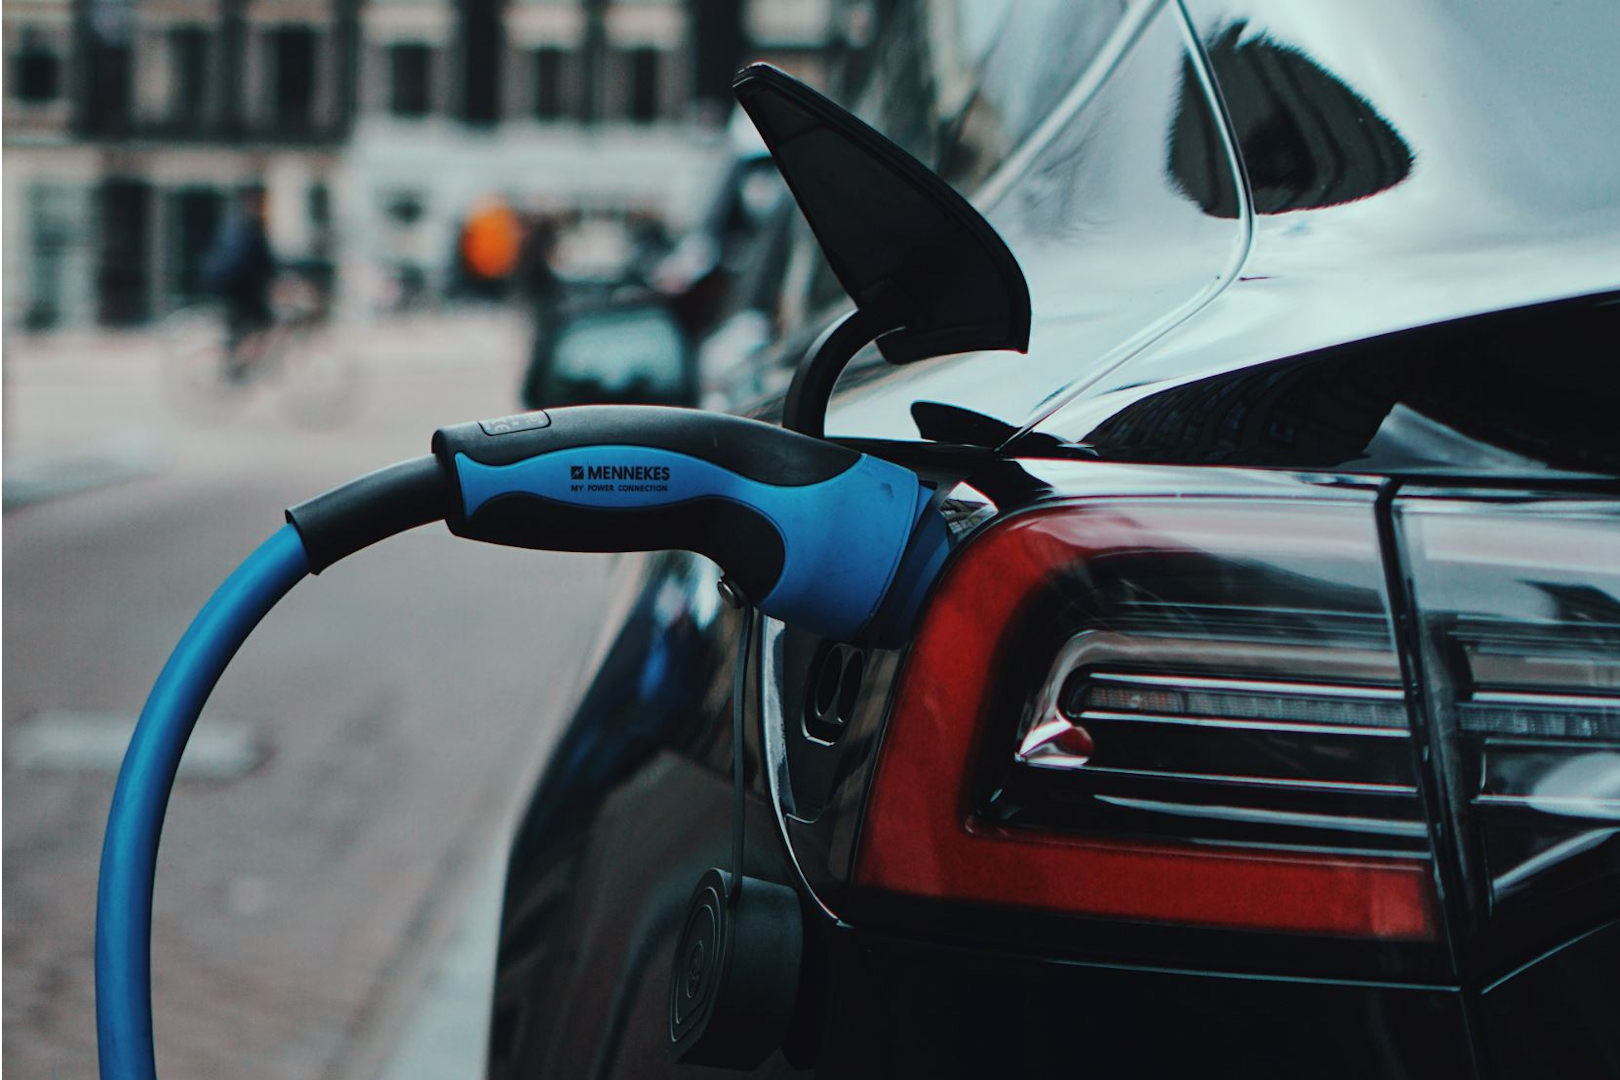 microngroup-electric-vehicle-charger-sports-car